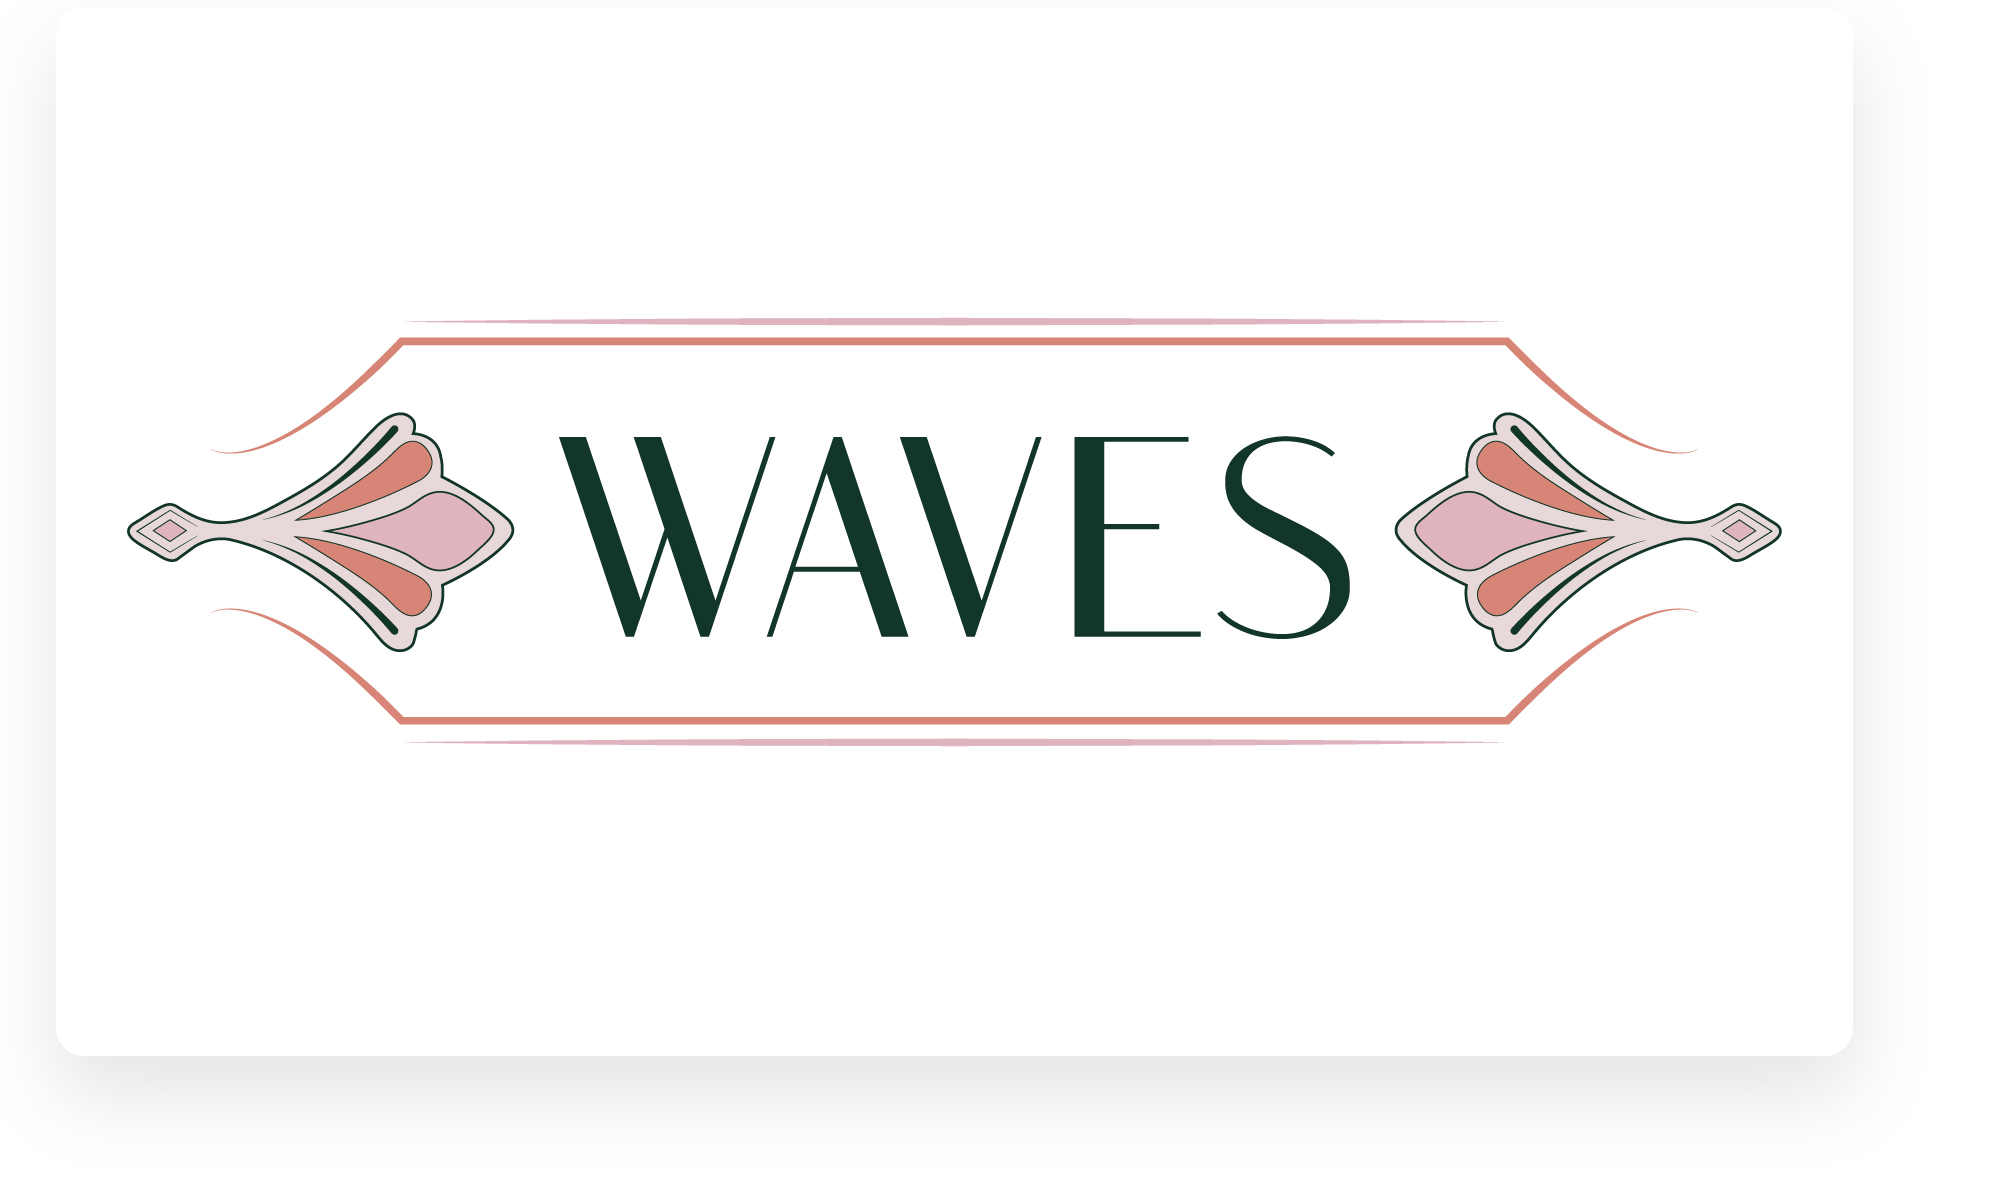 Waves_Salon.jpg